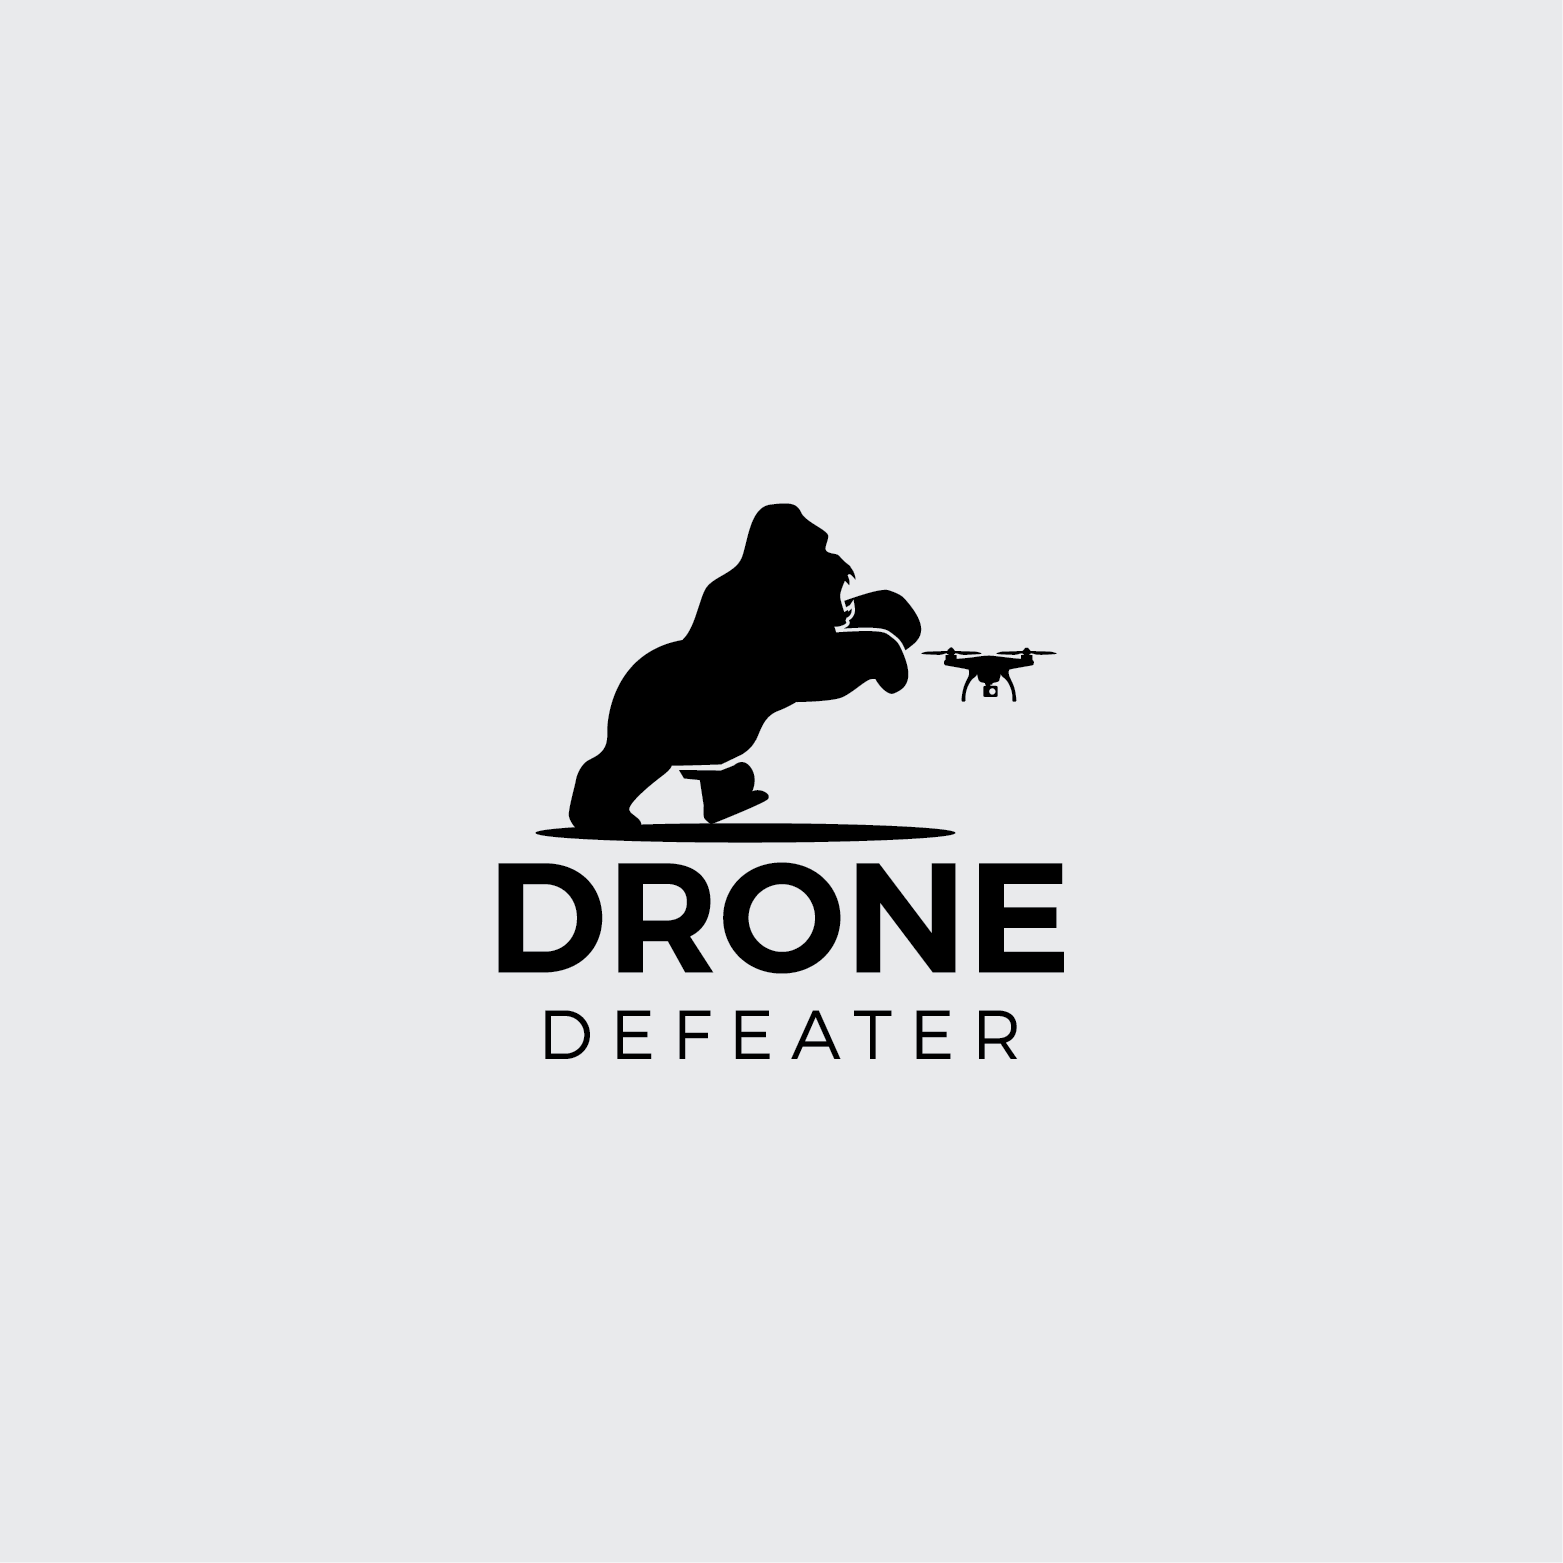 Logo Design by Rizky Adam - Entry No. 63 in the Logo Design Contest Artistic Logo Design for Drone Defeater.